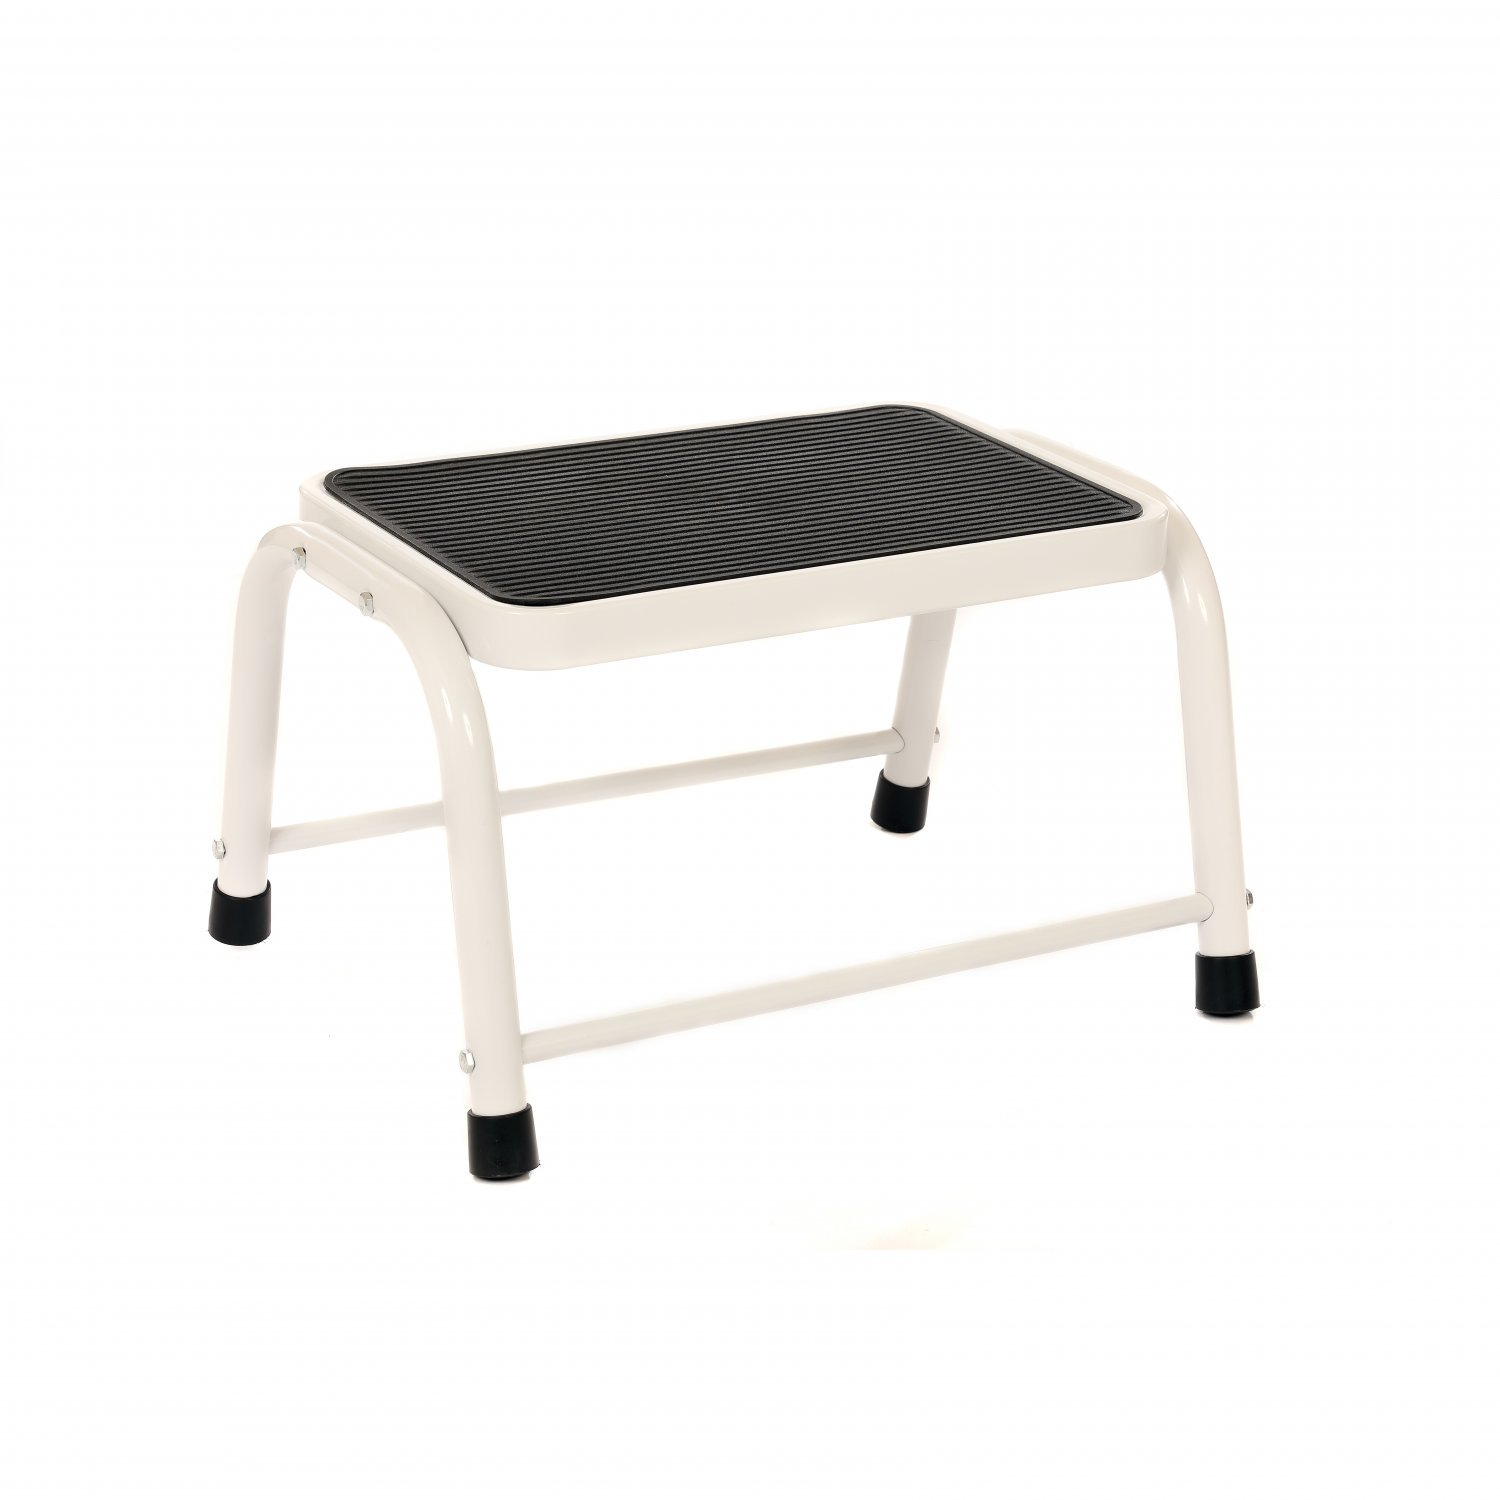 Single Caravan Step Stool Steel Non Slip Rubber Tread Safety